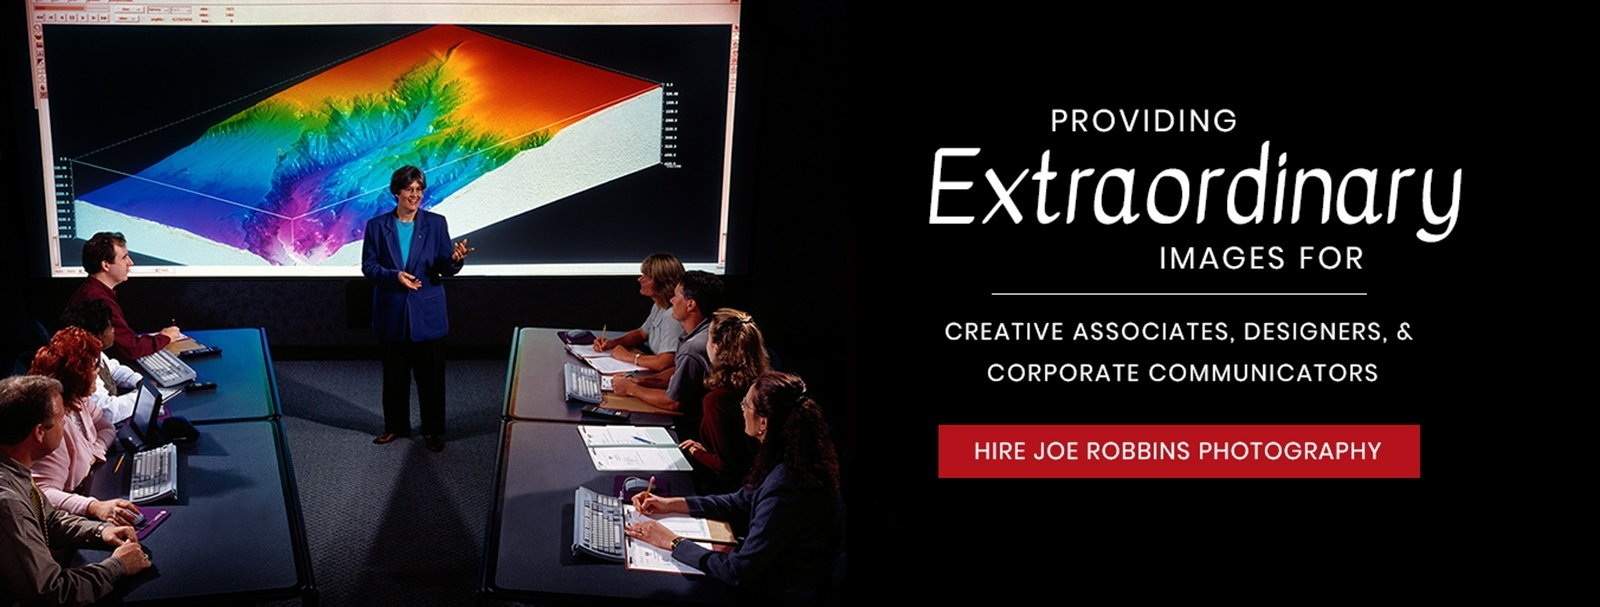 Providing Extra Ordinary Images for Creative Associates, Designers, & Corporate Communicators